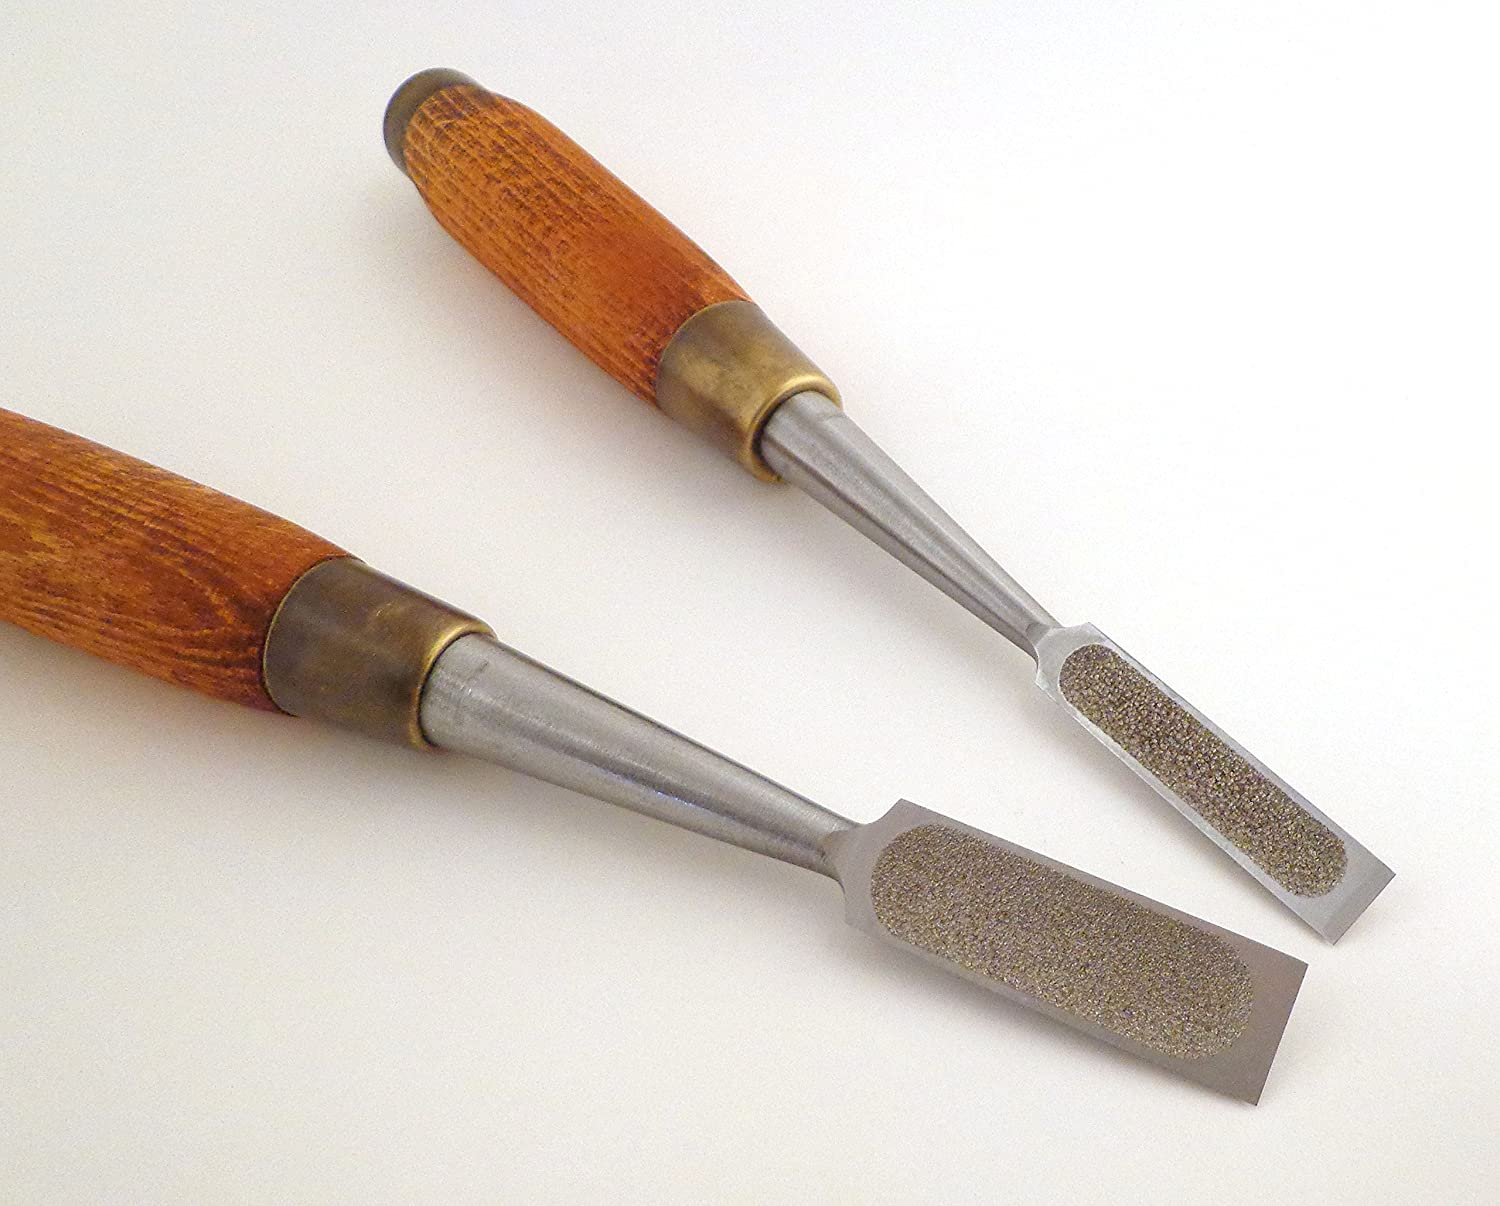 dovetail chisel. narex pair 1/2 and 3/4 dovetail japanese style chisels: amazon.in: amazon.in chisel